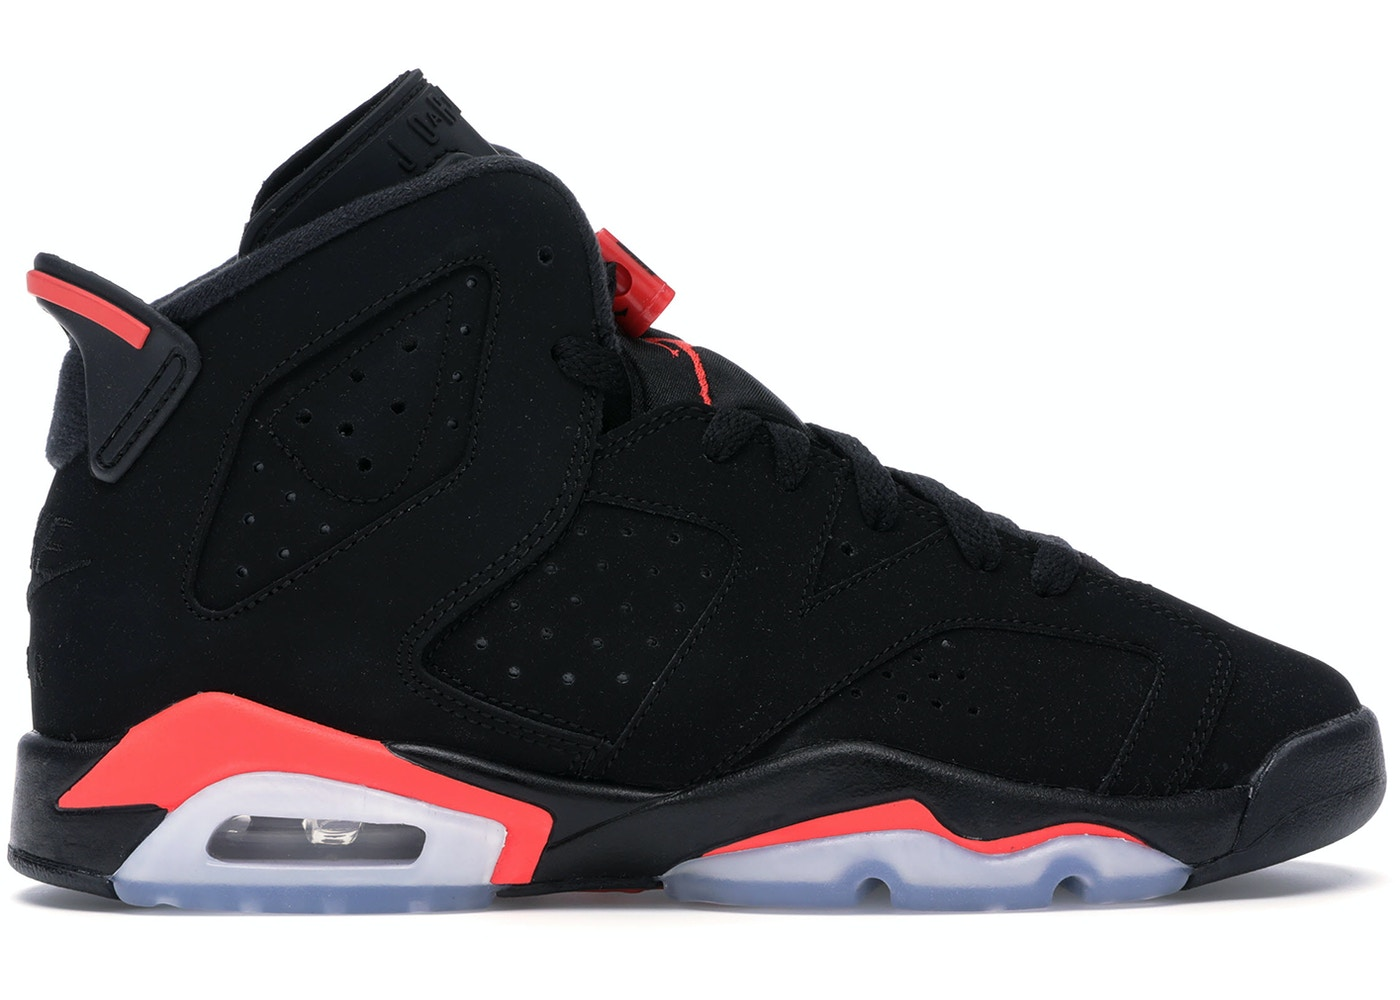 new arrival e70e7 45cb4 Jordan 6 Retro Black Infrared 2019 (GS) - 384665-060